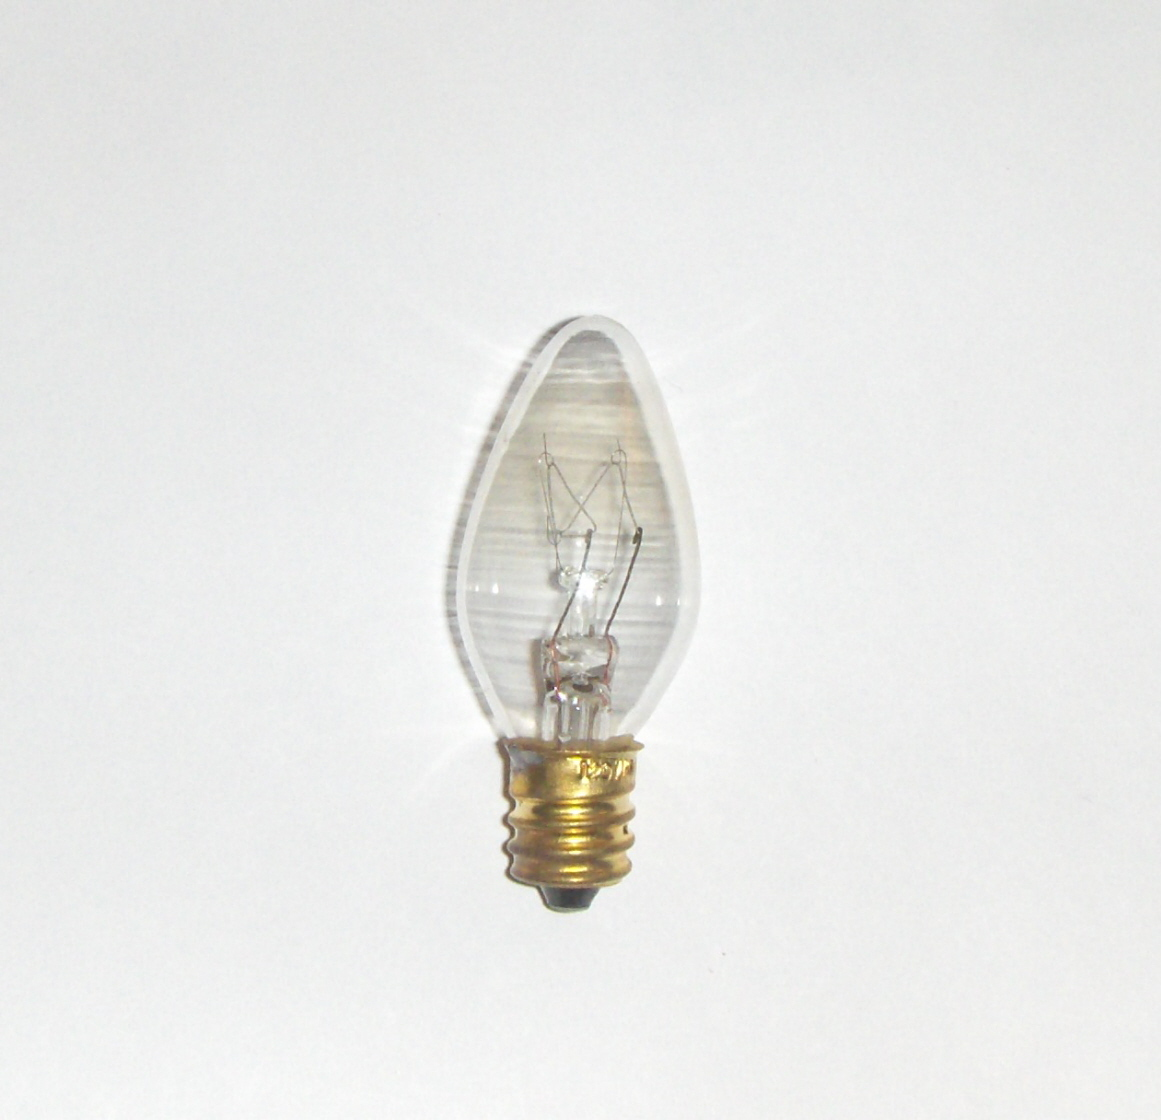 15 Watt Steady Burn Light Bulb